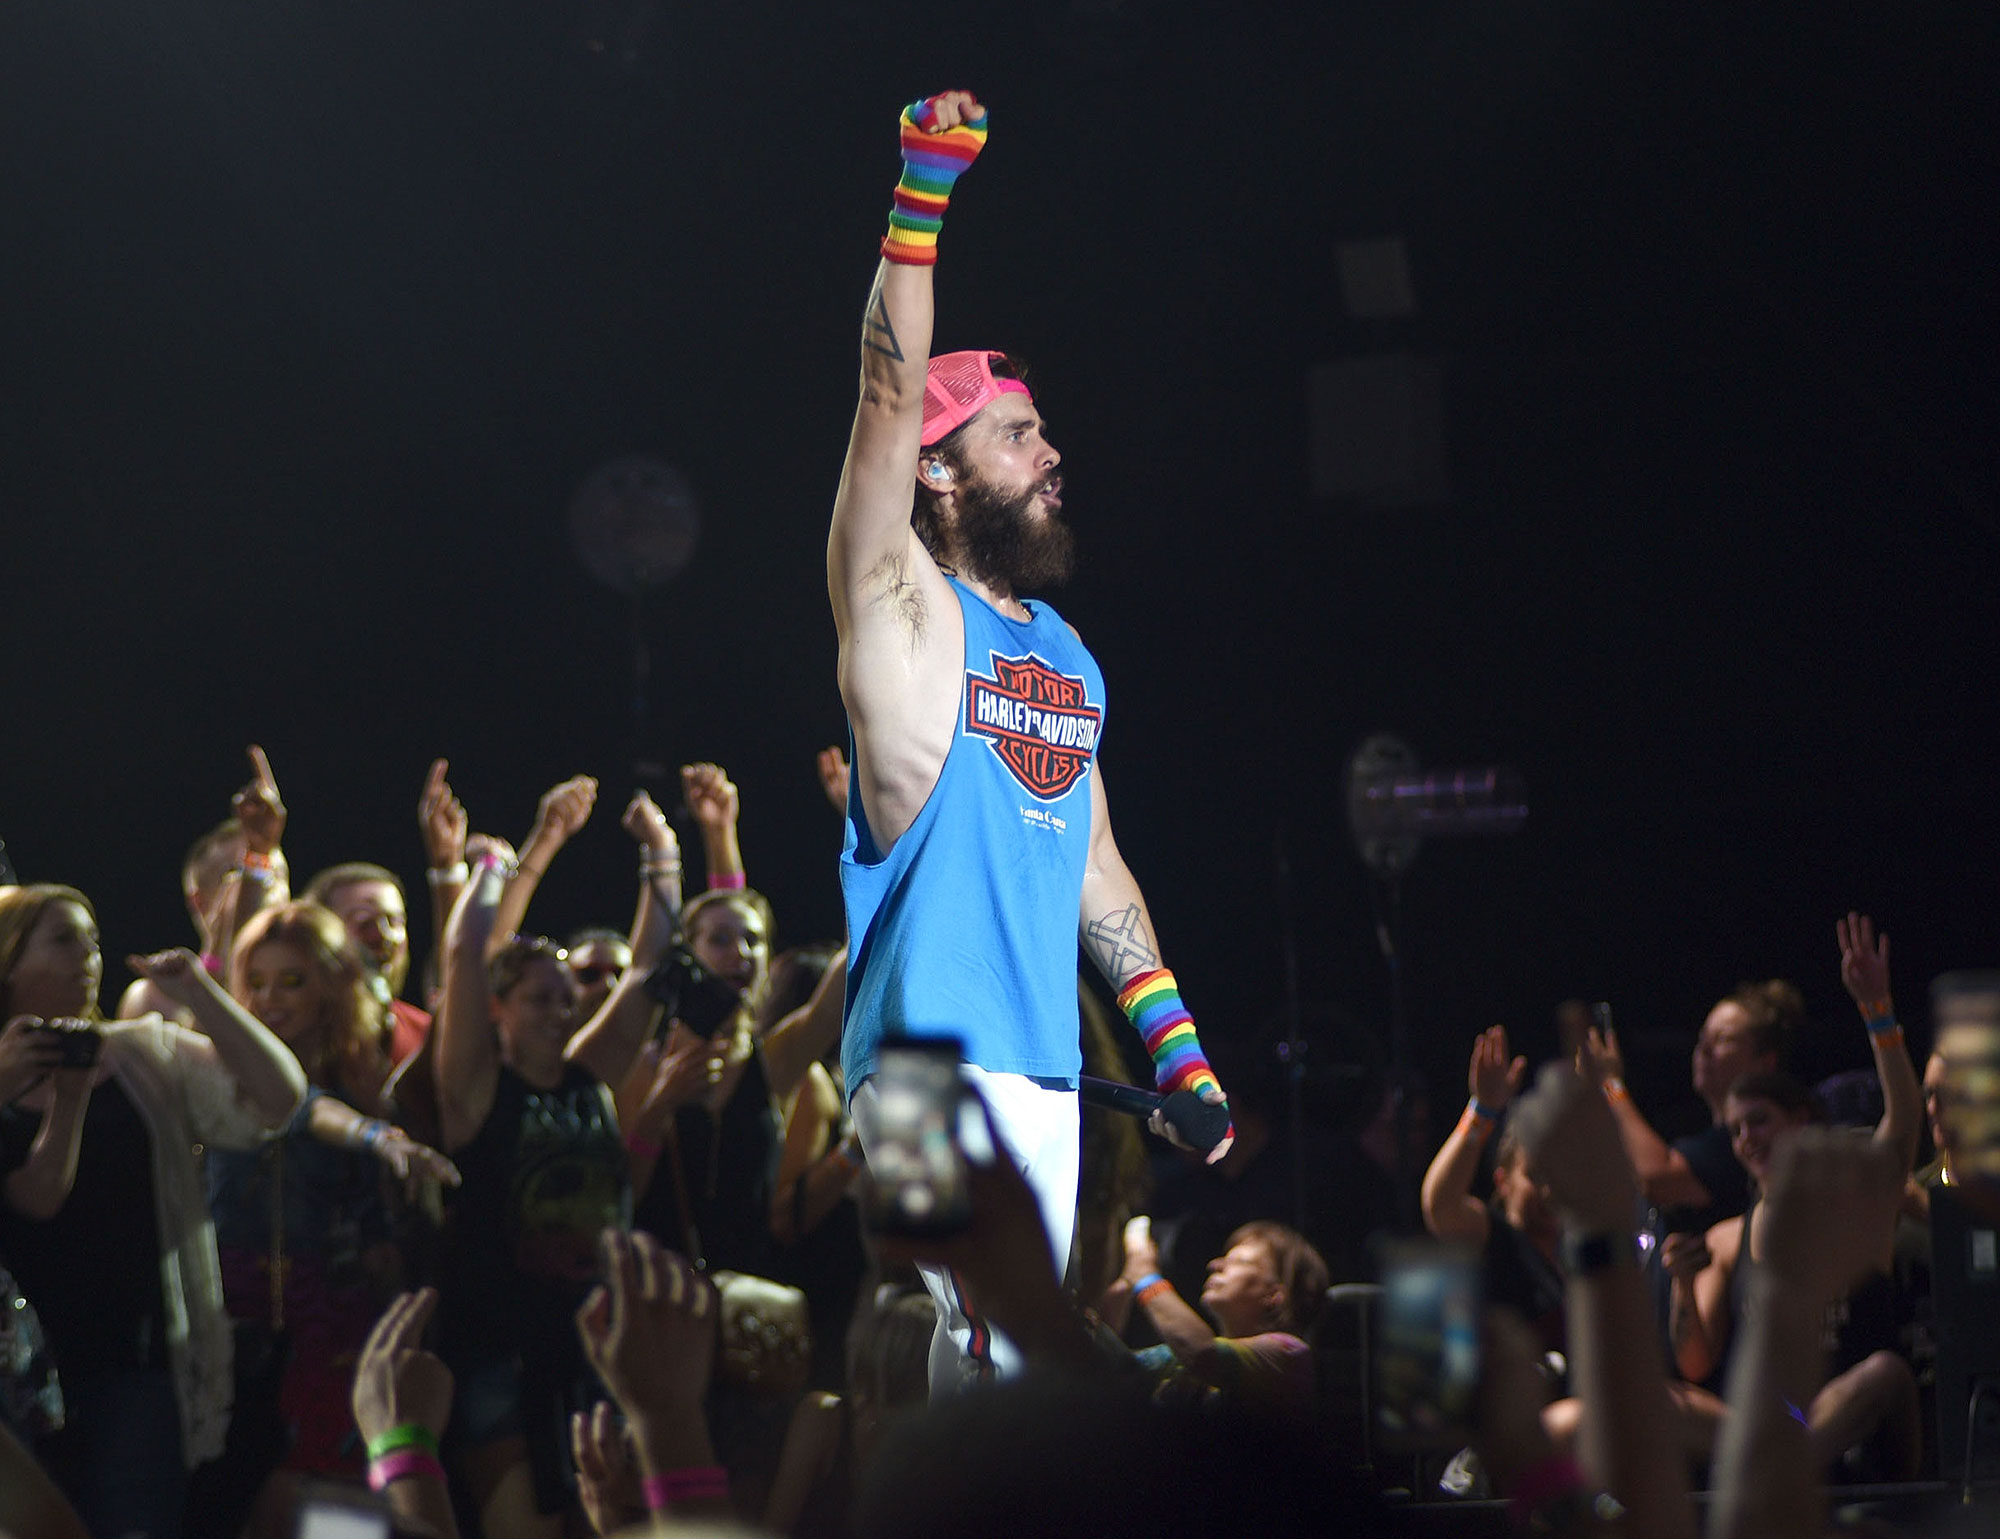 Thirty Seconds To Mars Plays The  Hollywood Casino Amphitheater In St. Louis, MO While On The Road With Muse